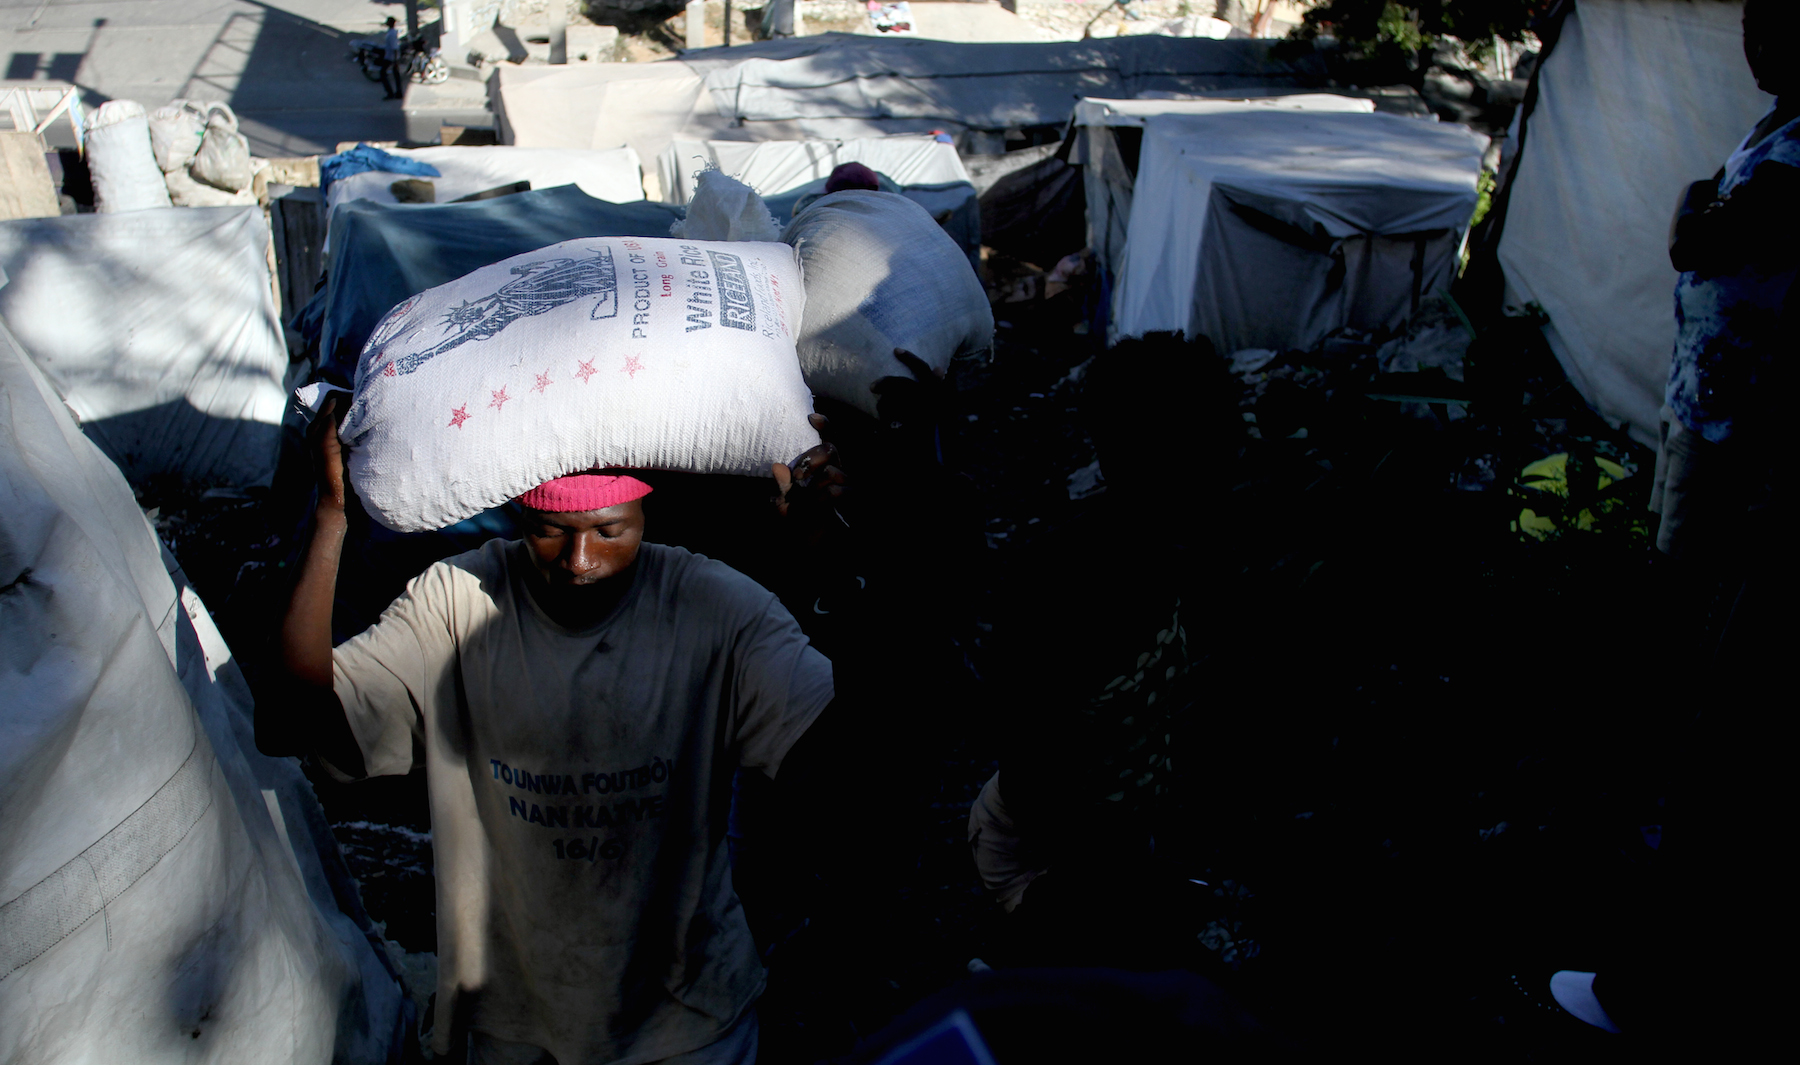 A man carries a bag of rice up the hills of the Acra 2 camp. Some critics of the humanitarian response in Haiti say that rice donated by the United States disrupts local food distribution and revenue streams.